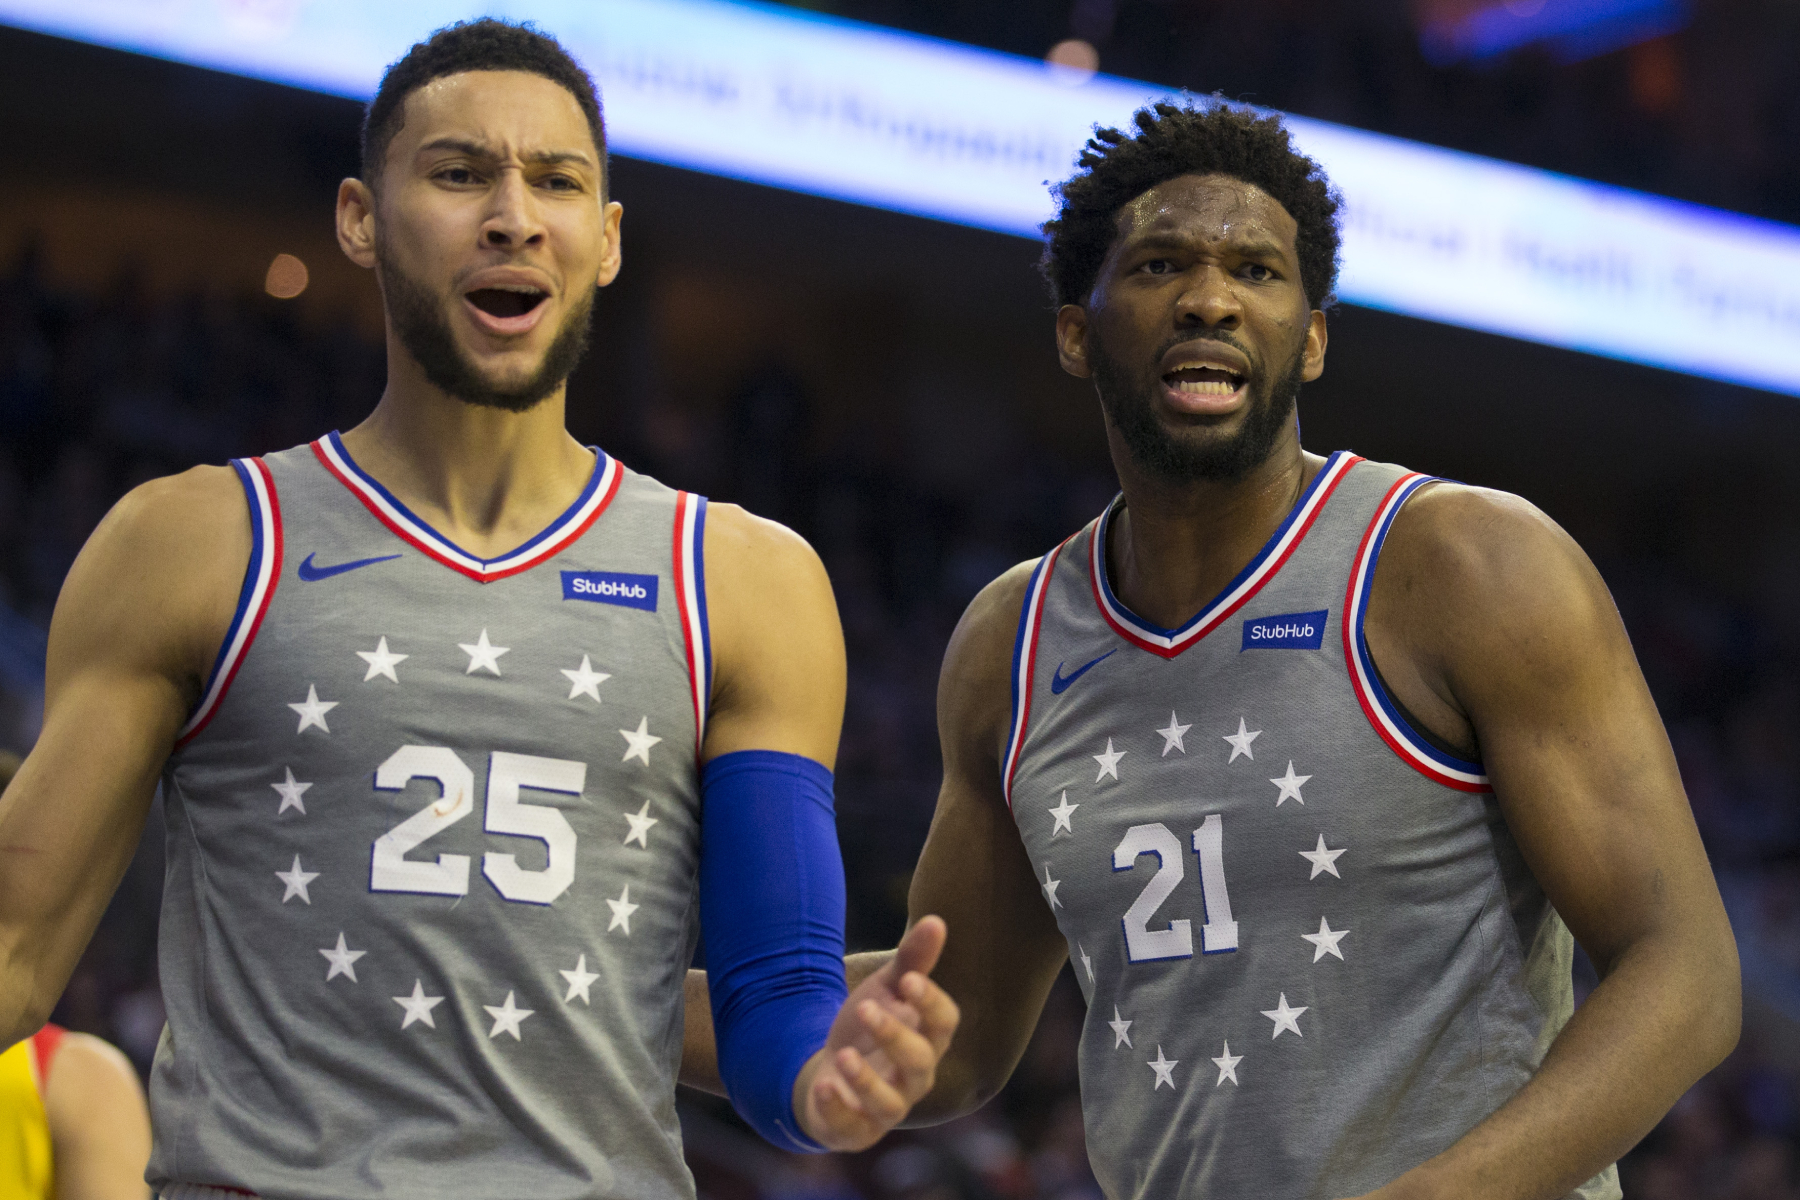 Ben Simmons, Joel Embiid, and the Philadelphia 76ers can go really far in the playoffs. However, their worst nightmare could be coming true.